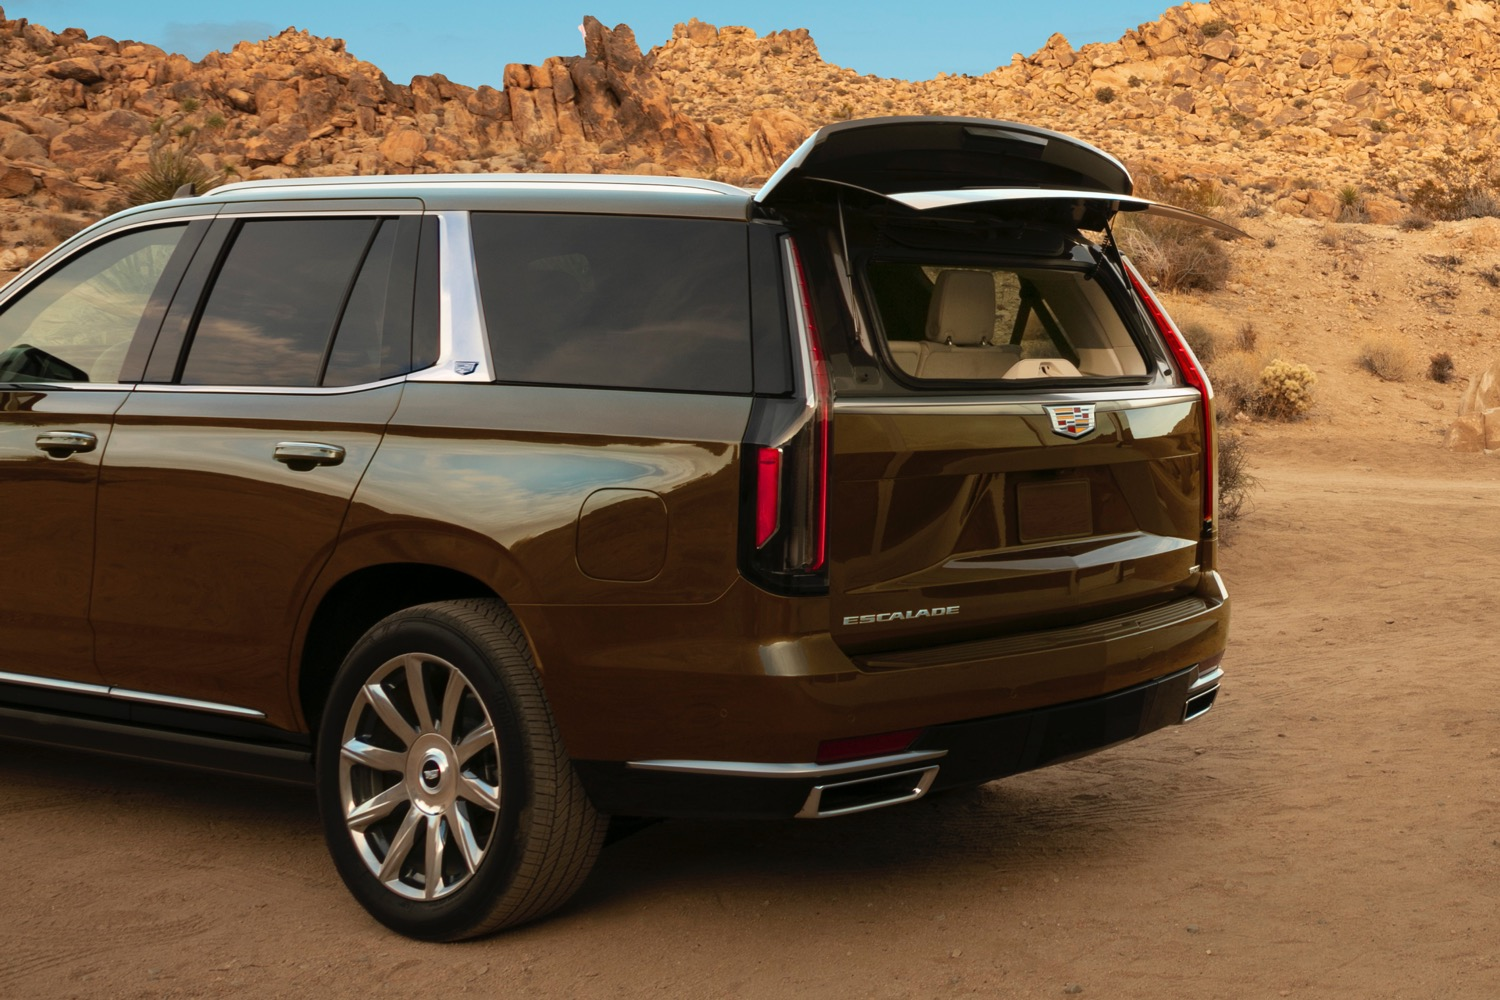 Check Out All The 2021 Escalade Interior Colors